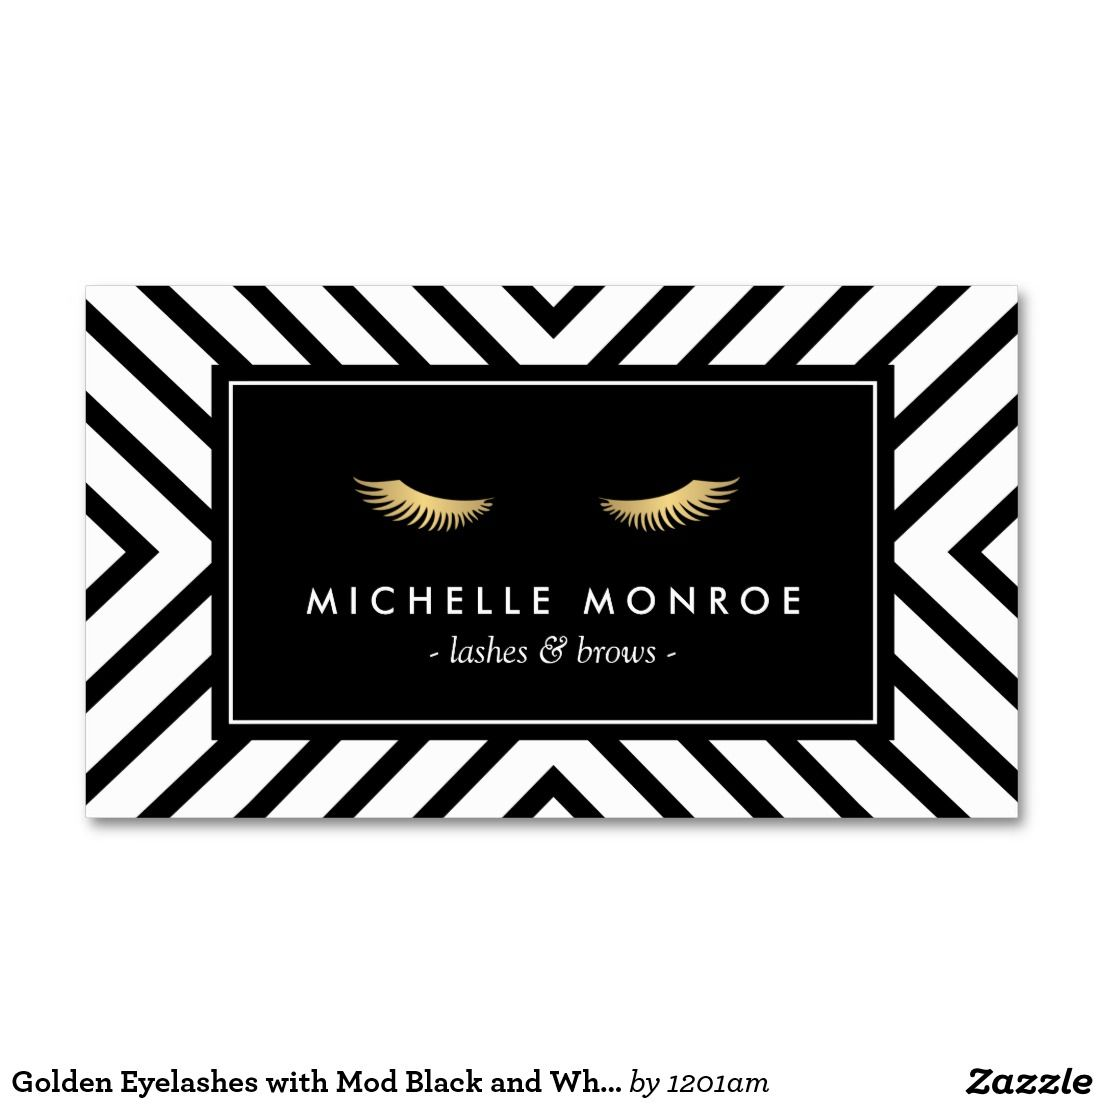 Golden eyelashes with mod black and white pattern business card golden eyelashes with mod black and white pattern business card business card templatesbusiness magicingreecefo Images